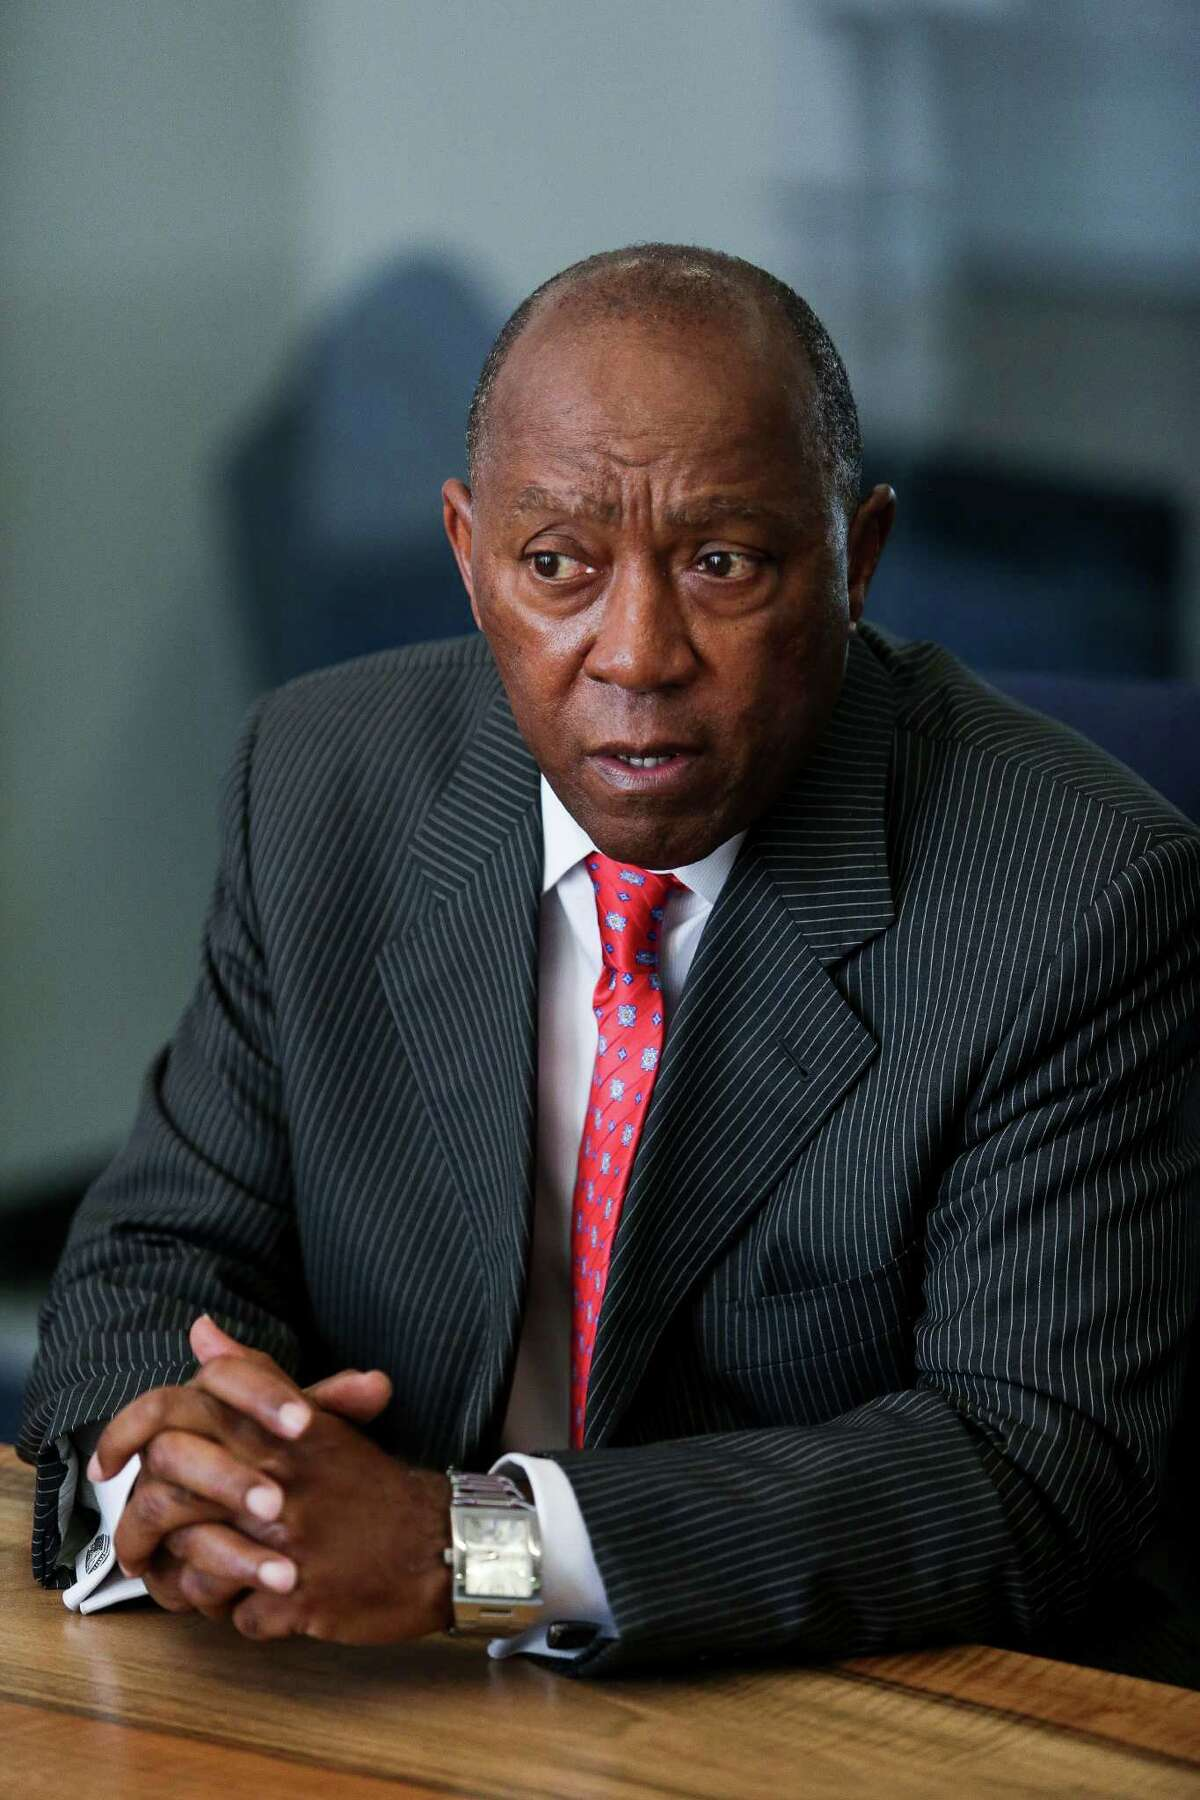 Houston mayor Sylvester Turner speaks to the Houston Chronicle editorial board Thursday, July 21, 2016. ( Michael Ciaglo / Houston Chronicle )